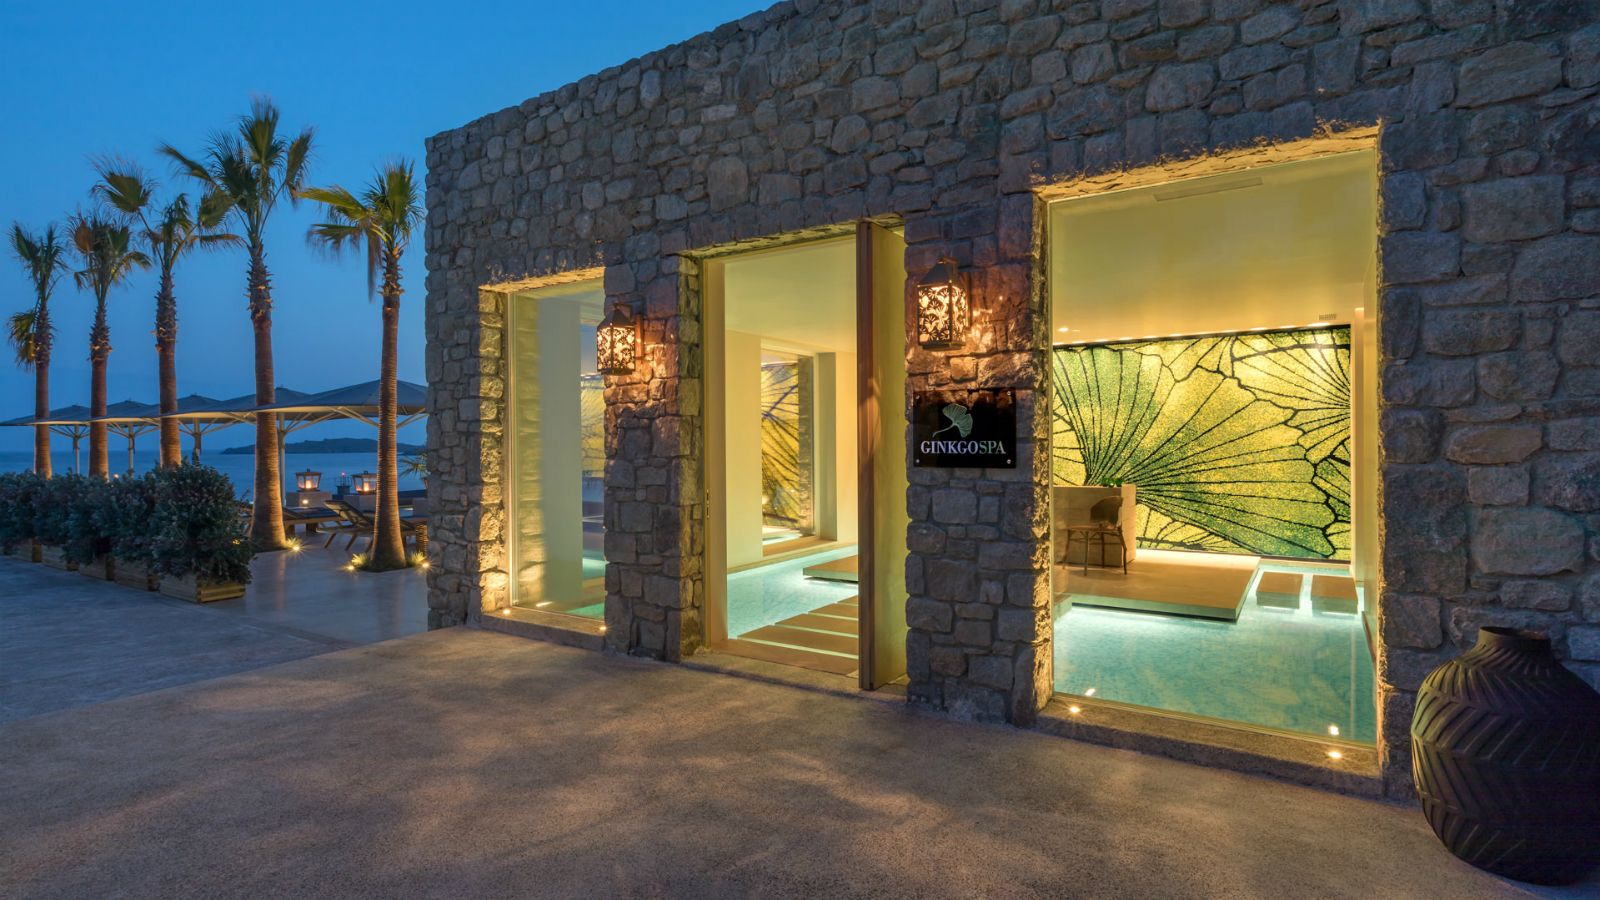 Ginkgo Spa at Santa Marina, A luxury collection resort in Mykonos Greece